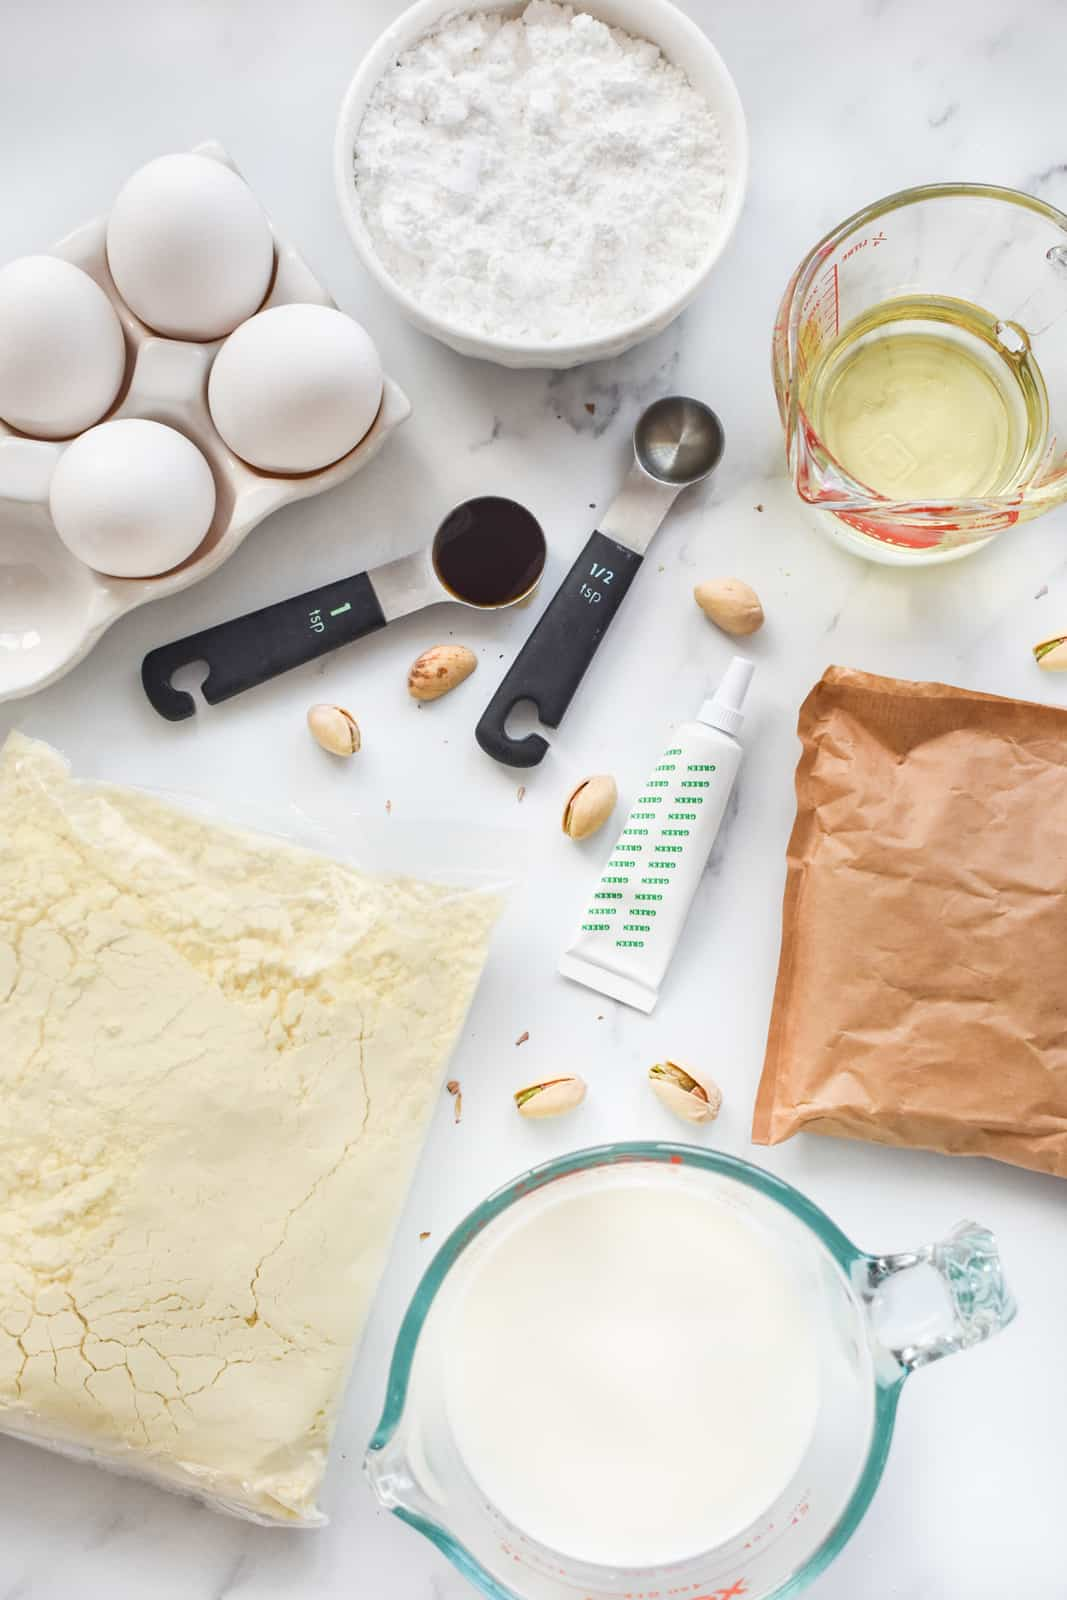 Ingredients needed to make a Pistachio Cake